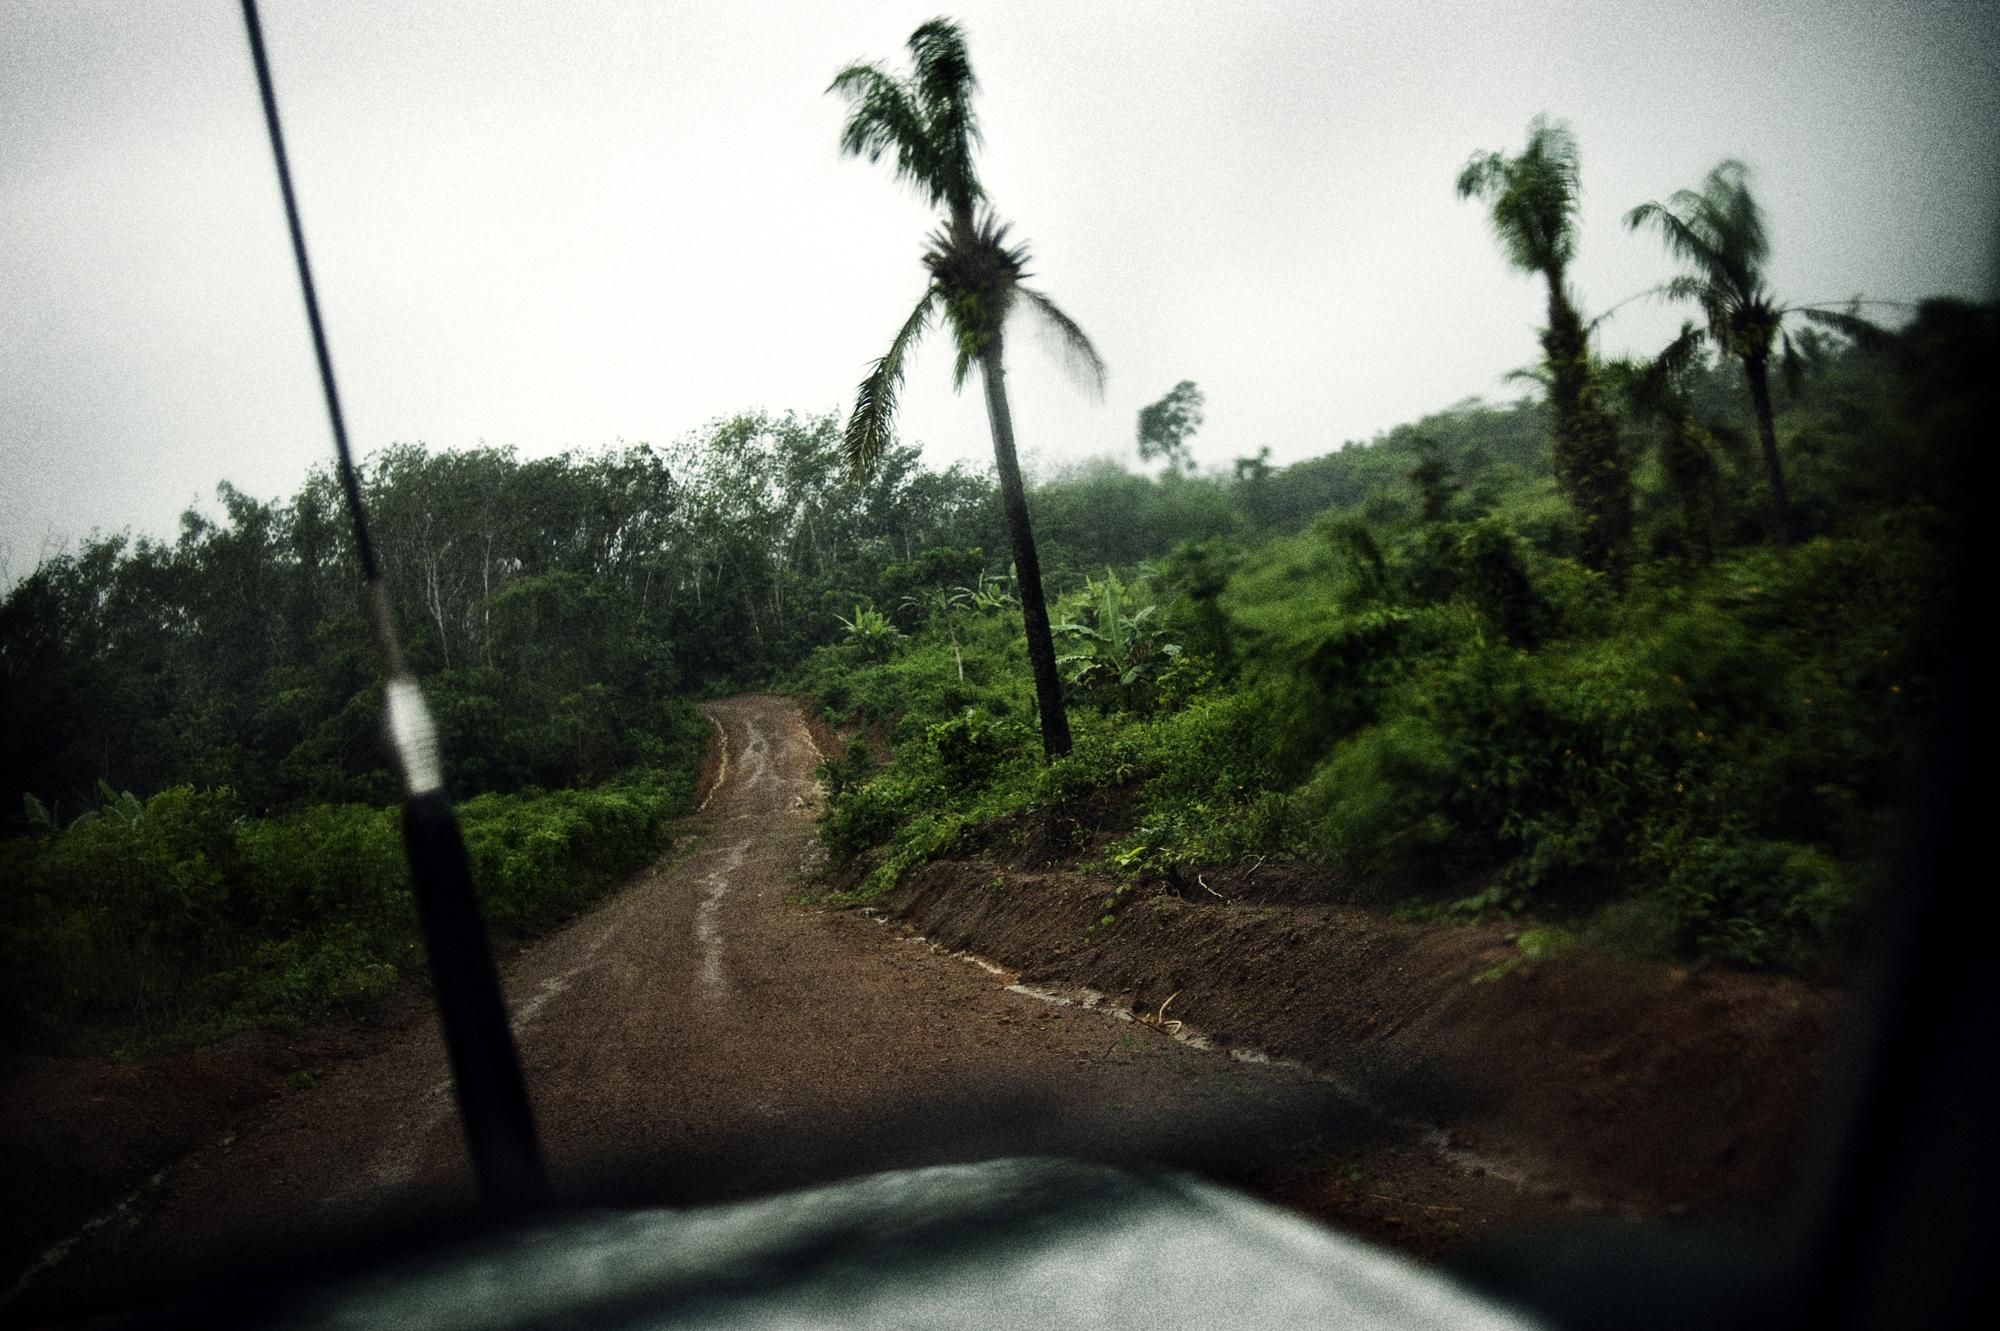 Liberia, Kingsville. October 2008. The road from Monrovia to Kingsville.